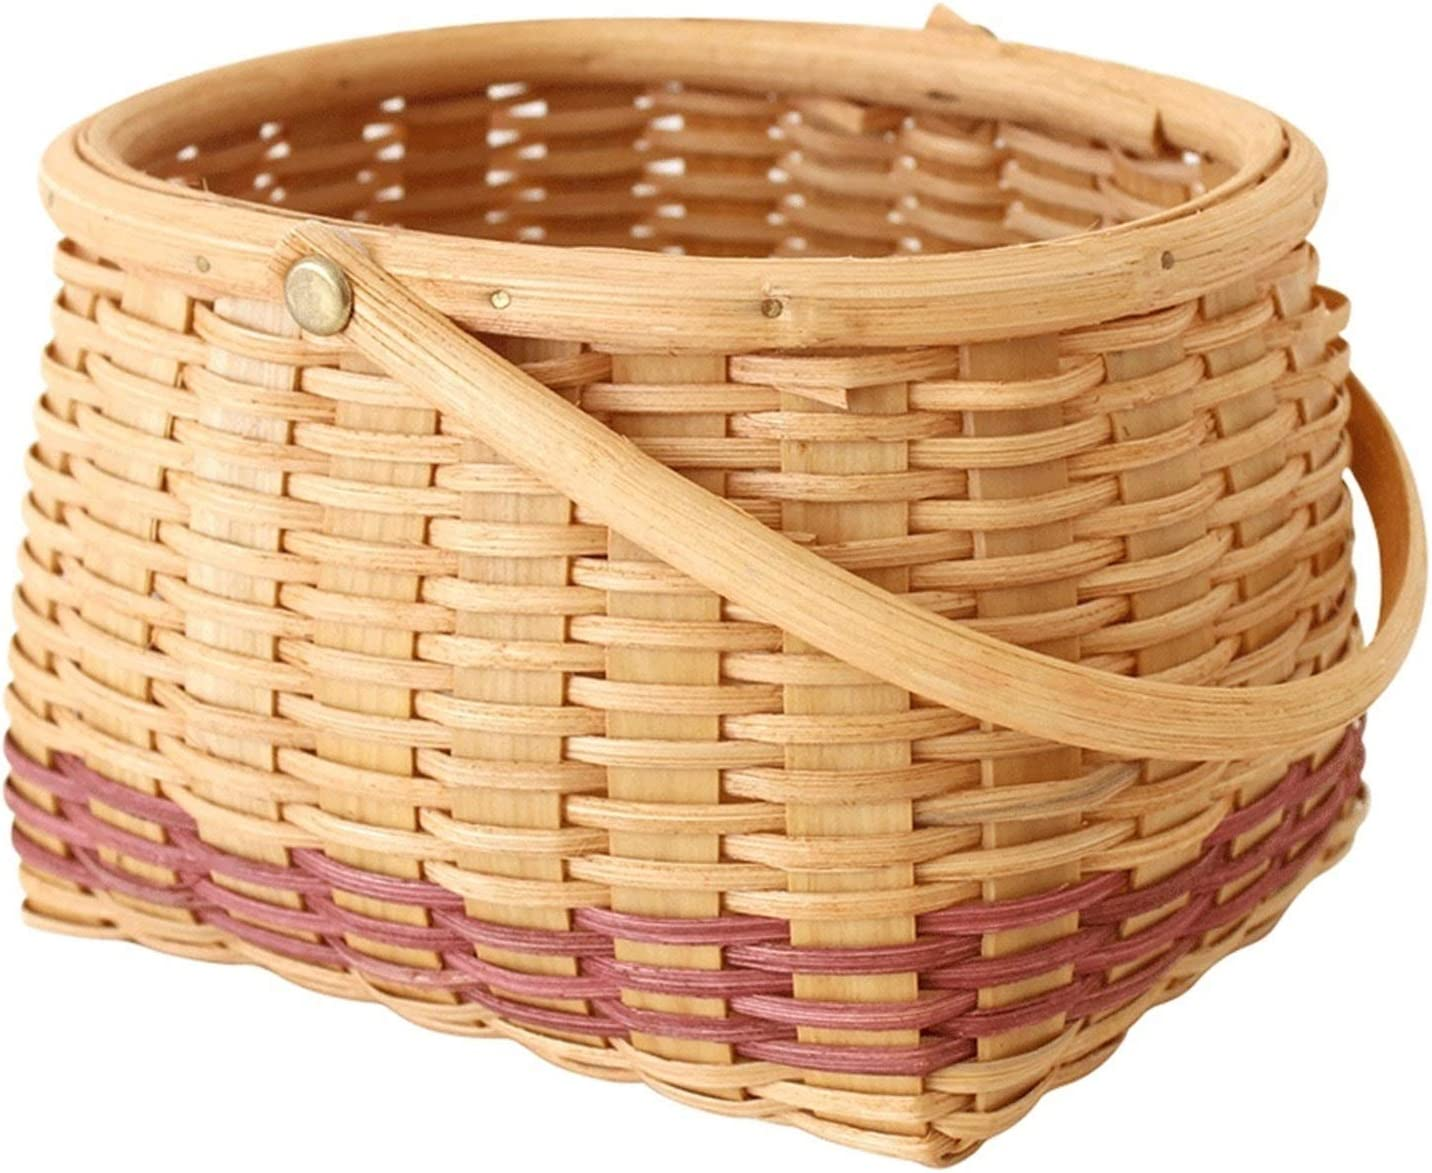 Soldering Electric oven Very popular Round Rattan Woven and Storage Basket Veget Fruit